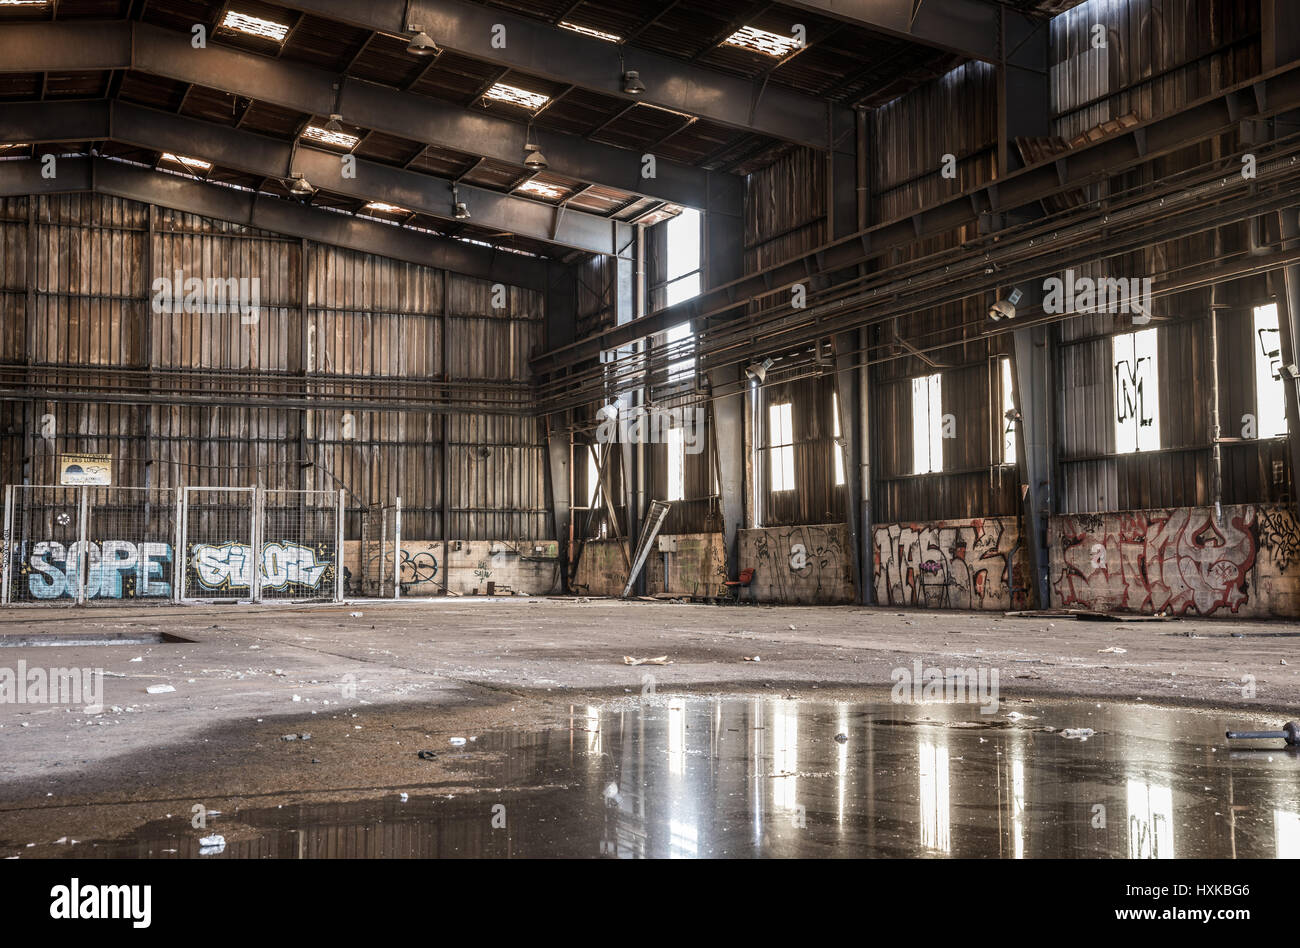 Large abandoned hangar in Nantes  France Stock Photo  136879798   Alamy Large abandoned hangar in Nantes  France